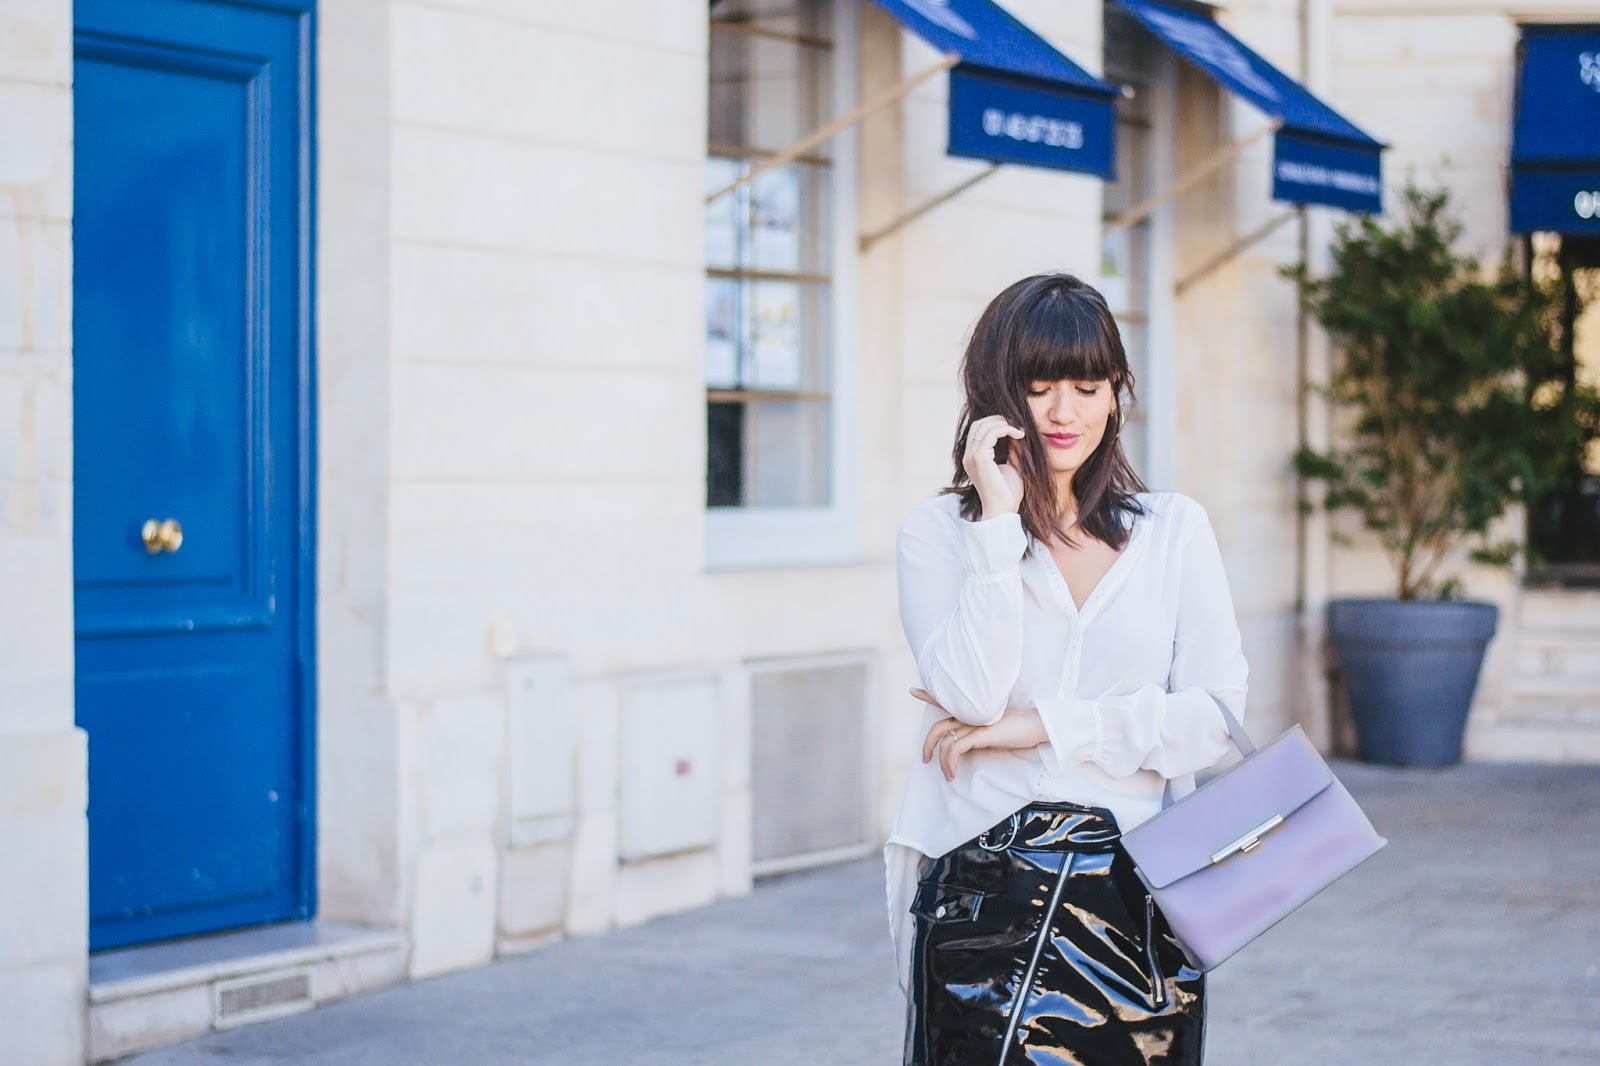 paris-blogger-mode-style-look-fashion-parisianstyle-meetmeinparee